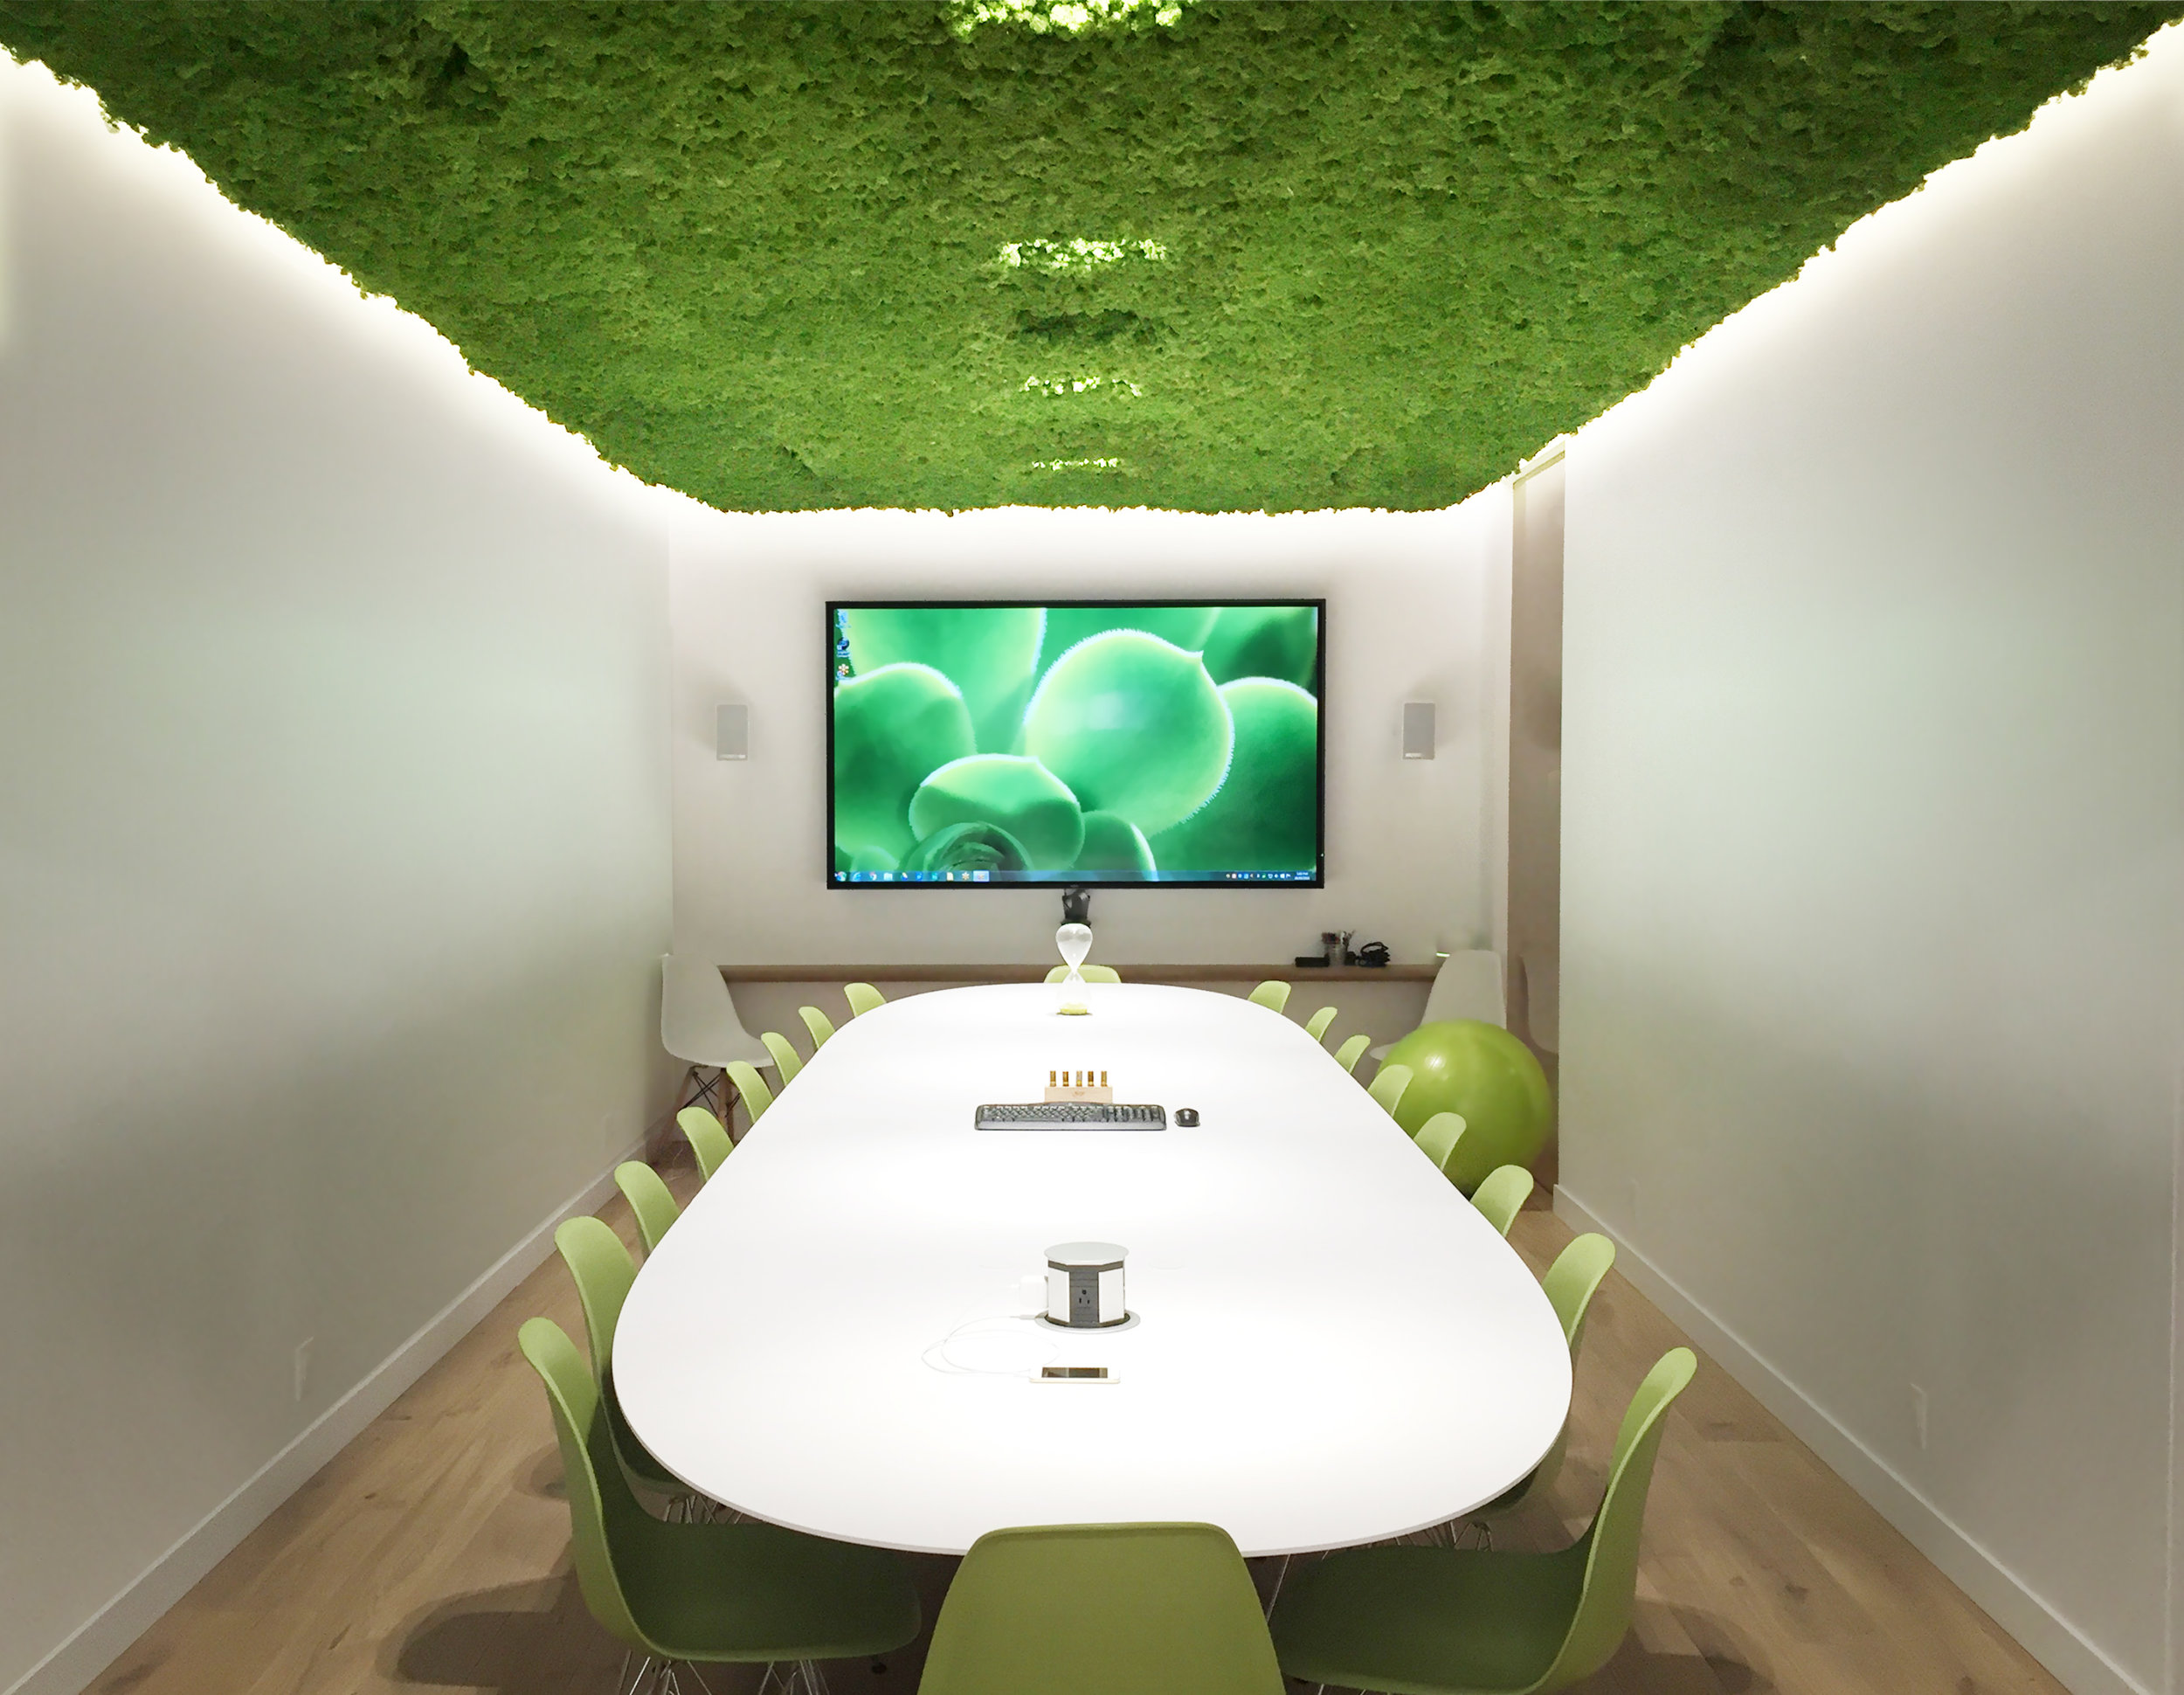 Cove lighting, and a large screen glowing at the end of a cool white boardroom table beg you to open your eyes as you enter this unique room. Discretely nested connections and controls allow occupants to use the audio visual facilities.